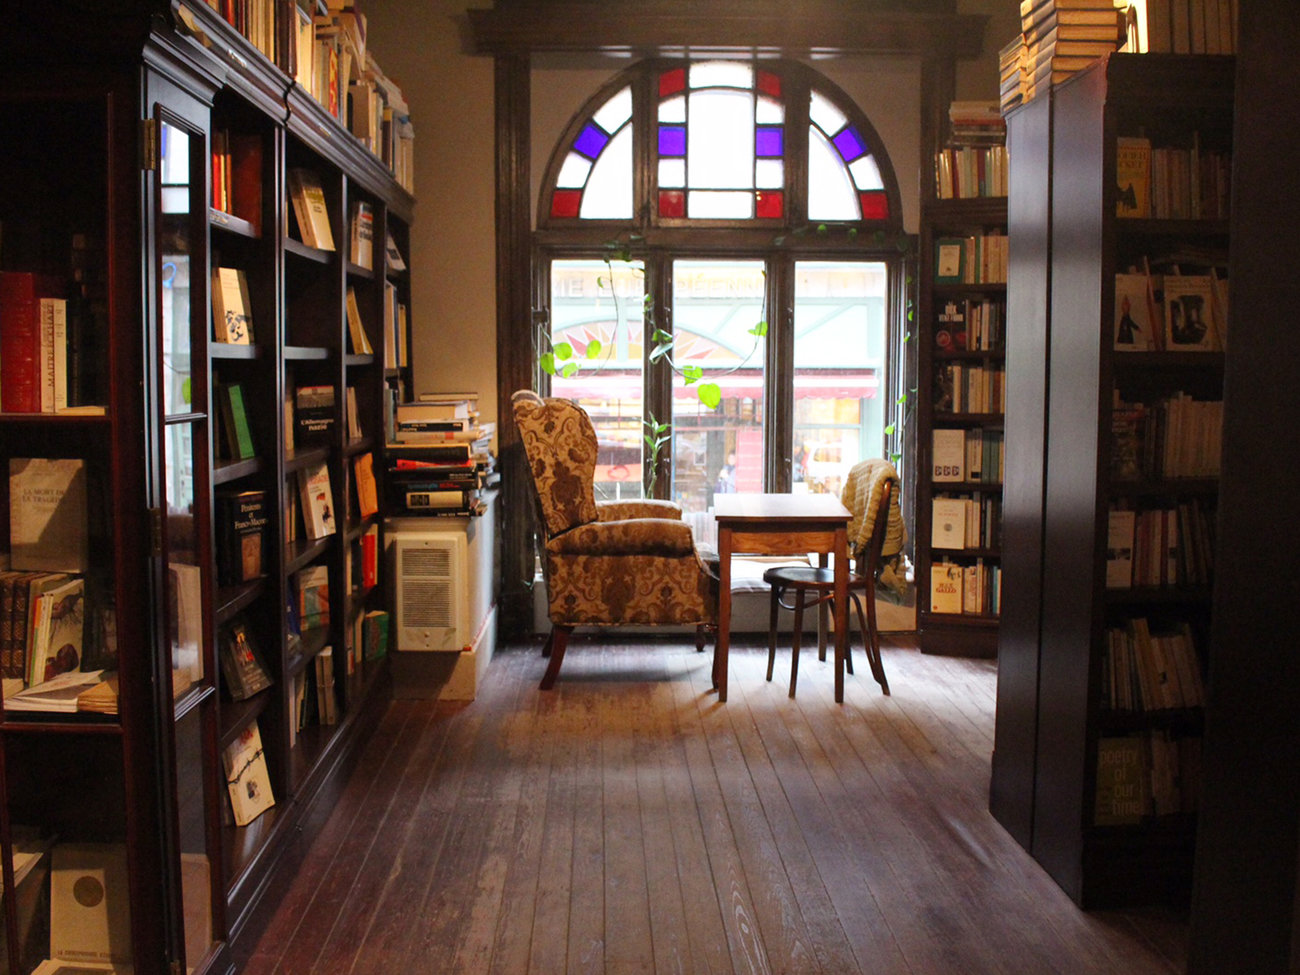 Librairie St.-Jean-Baptiste Library in Quebec City